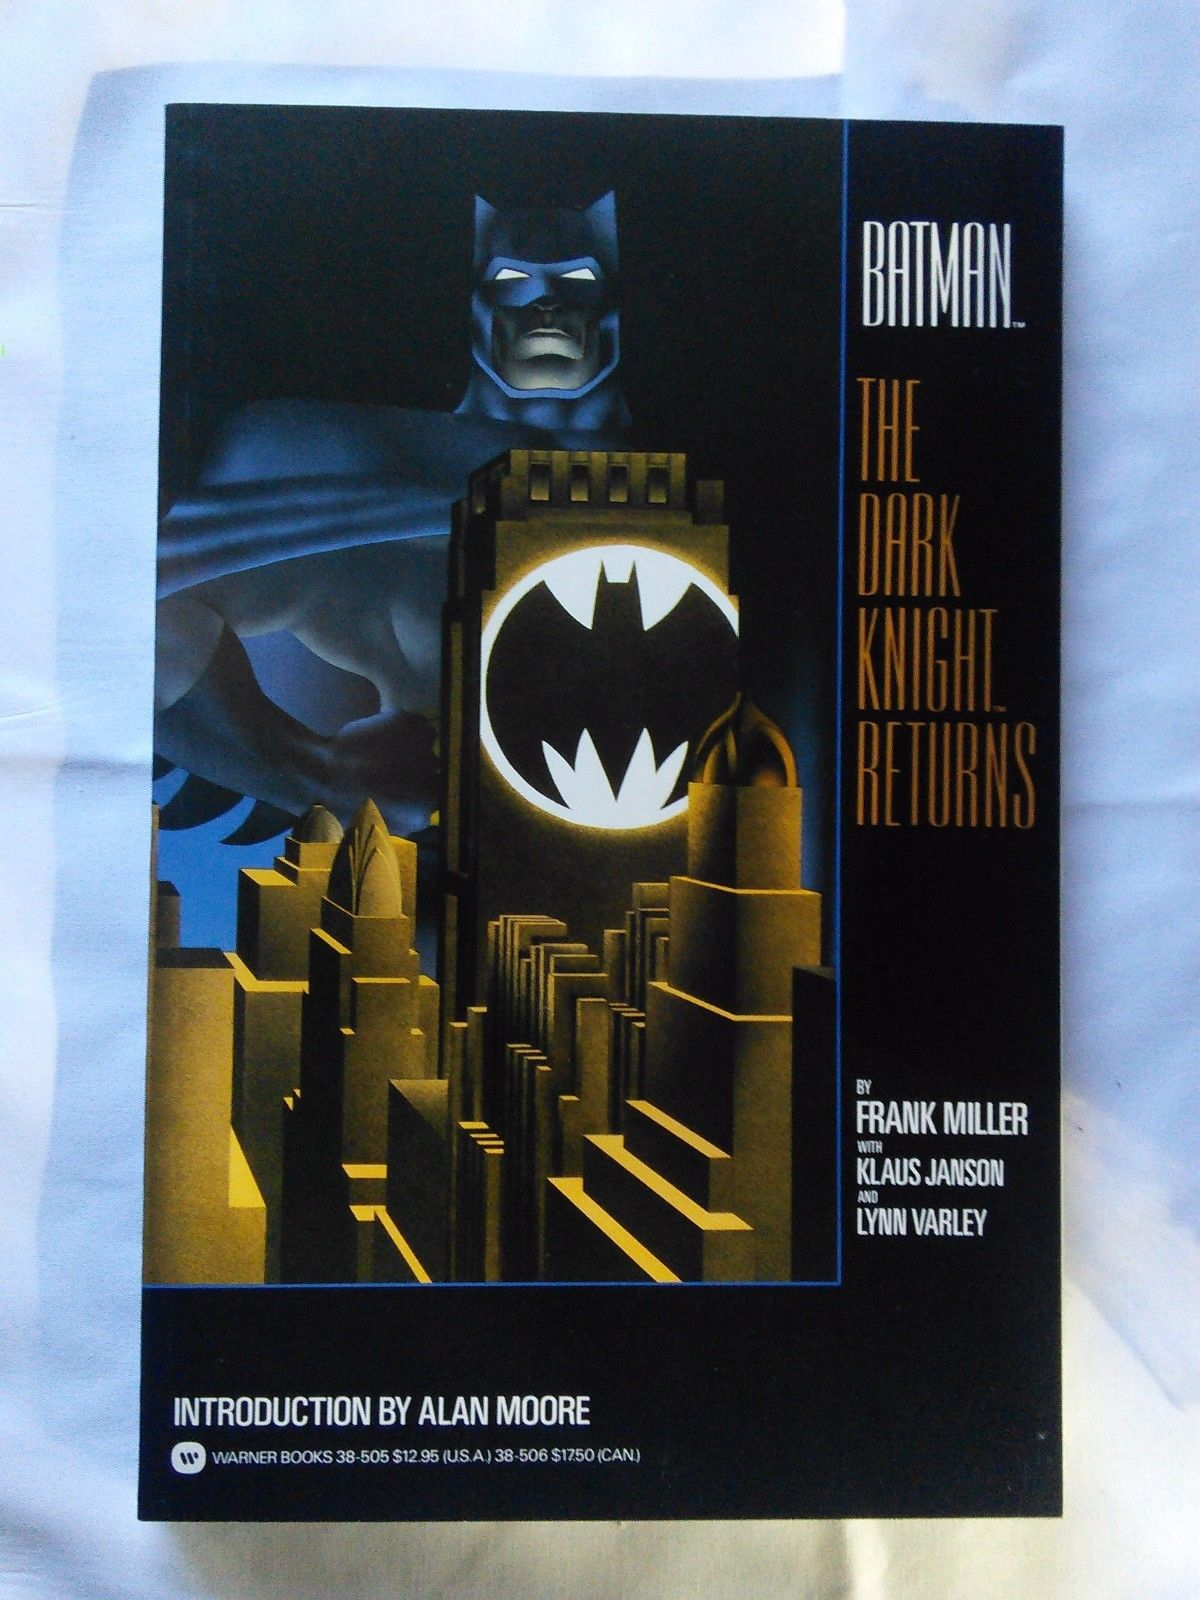 Batman The Dark Knight Returns TPB, first print, NM condition, Frank Miller